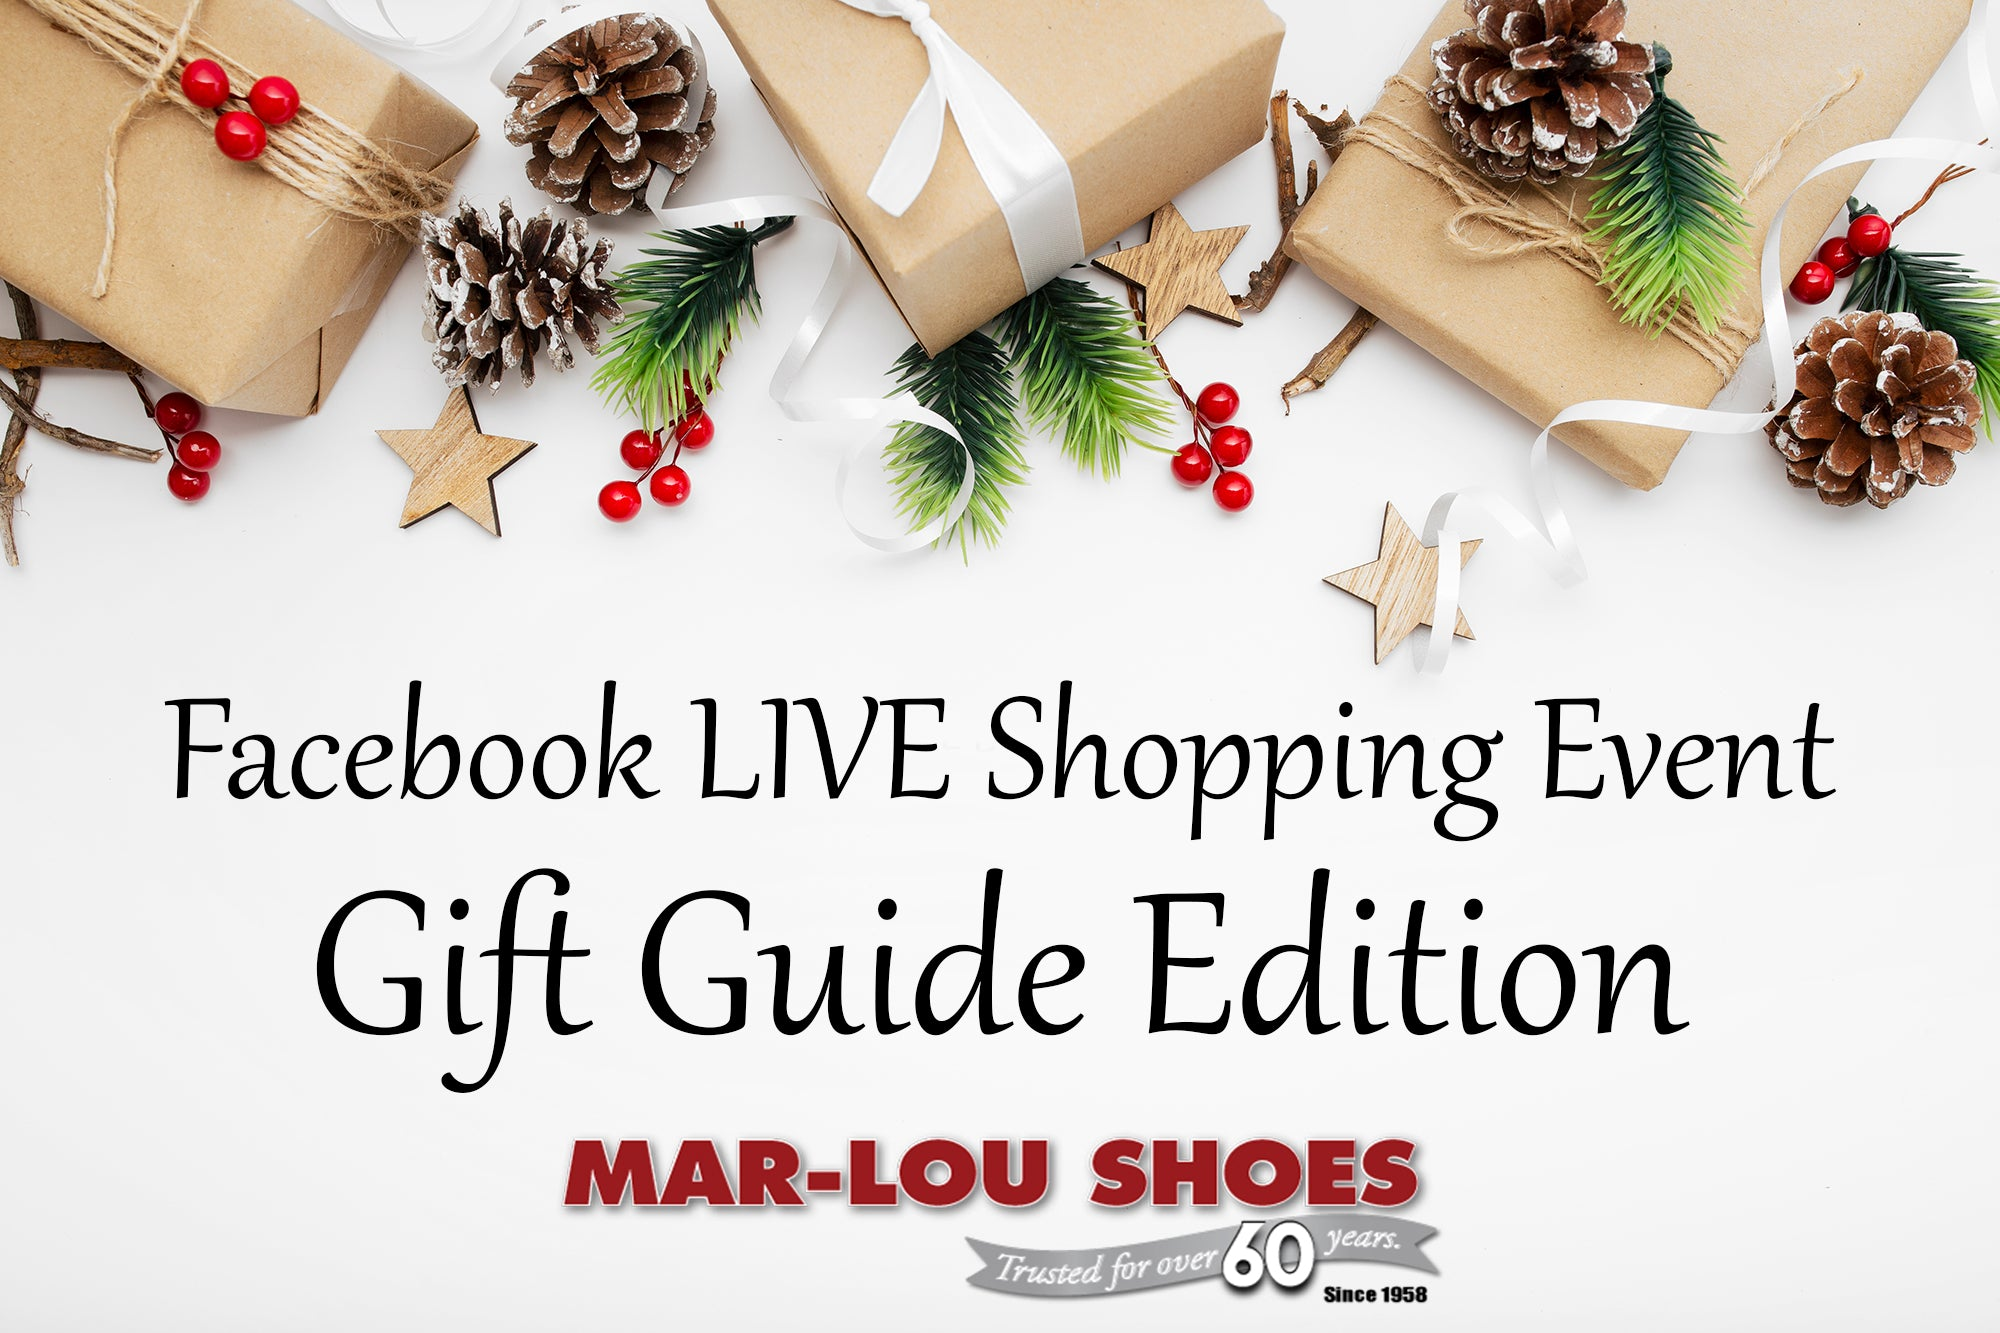 Facebook LIVE Shopping Gift Guide Edition